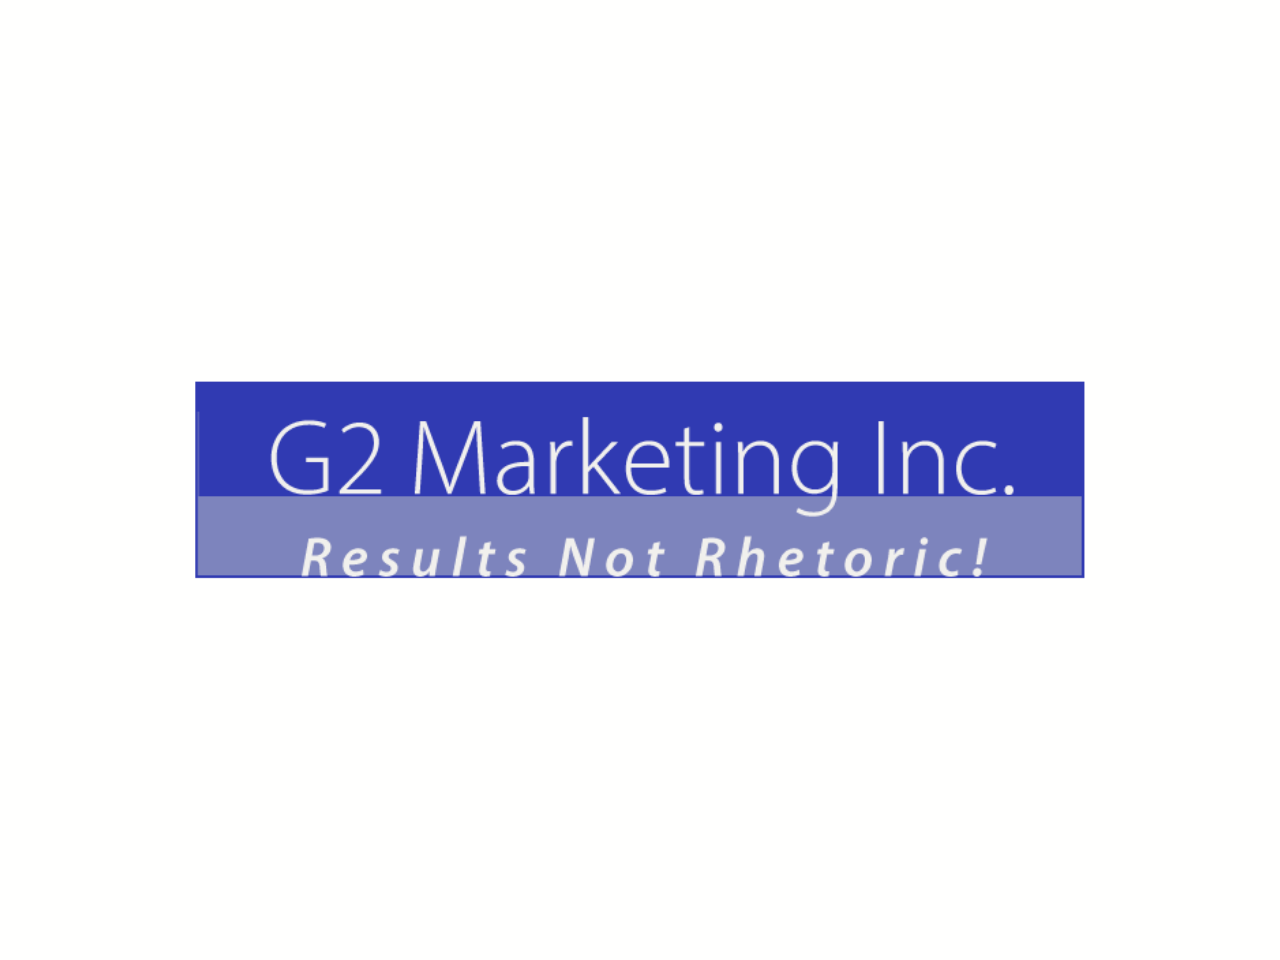 G2 Marketing Inc.